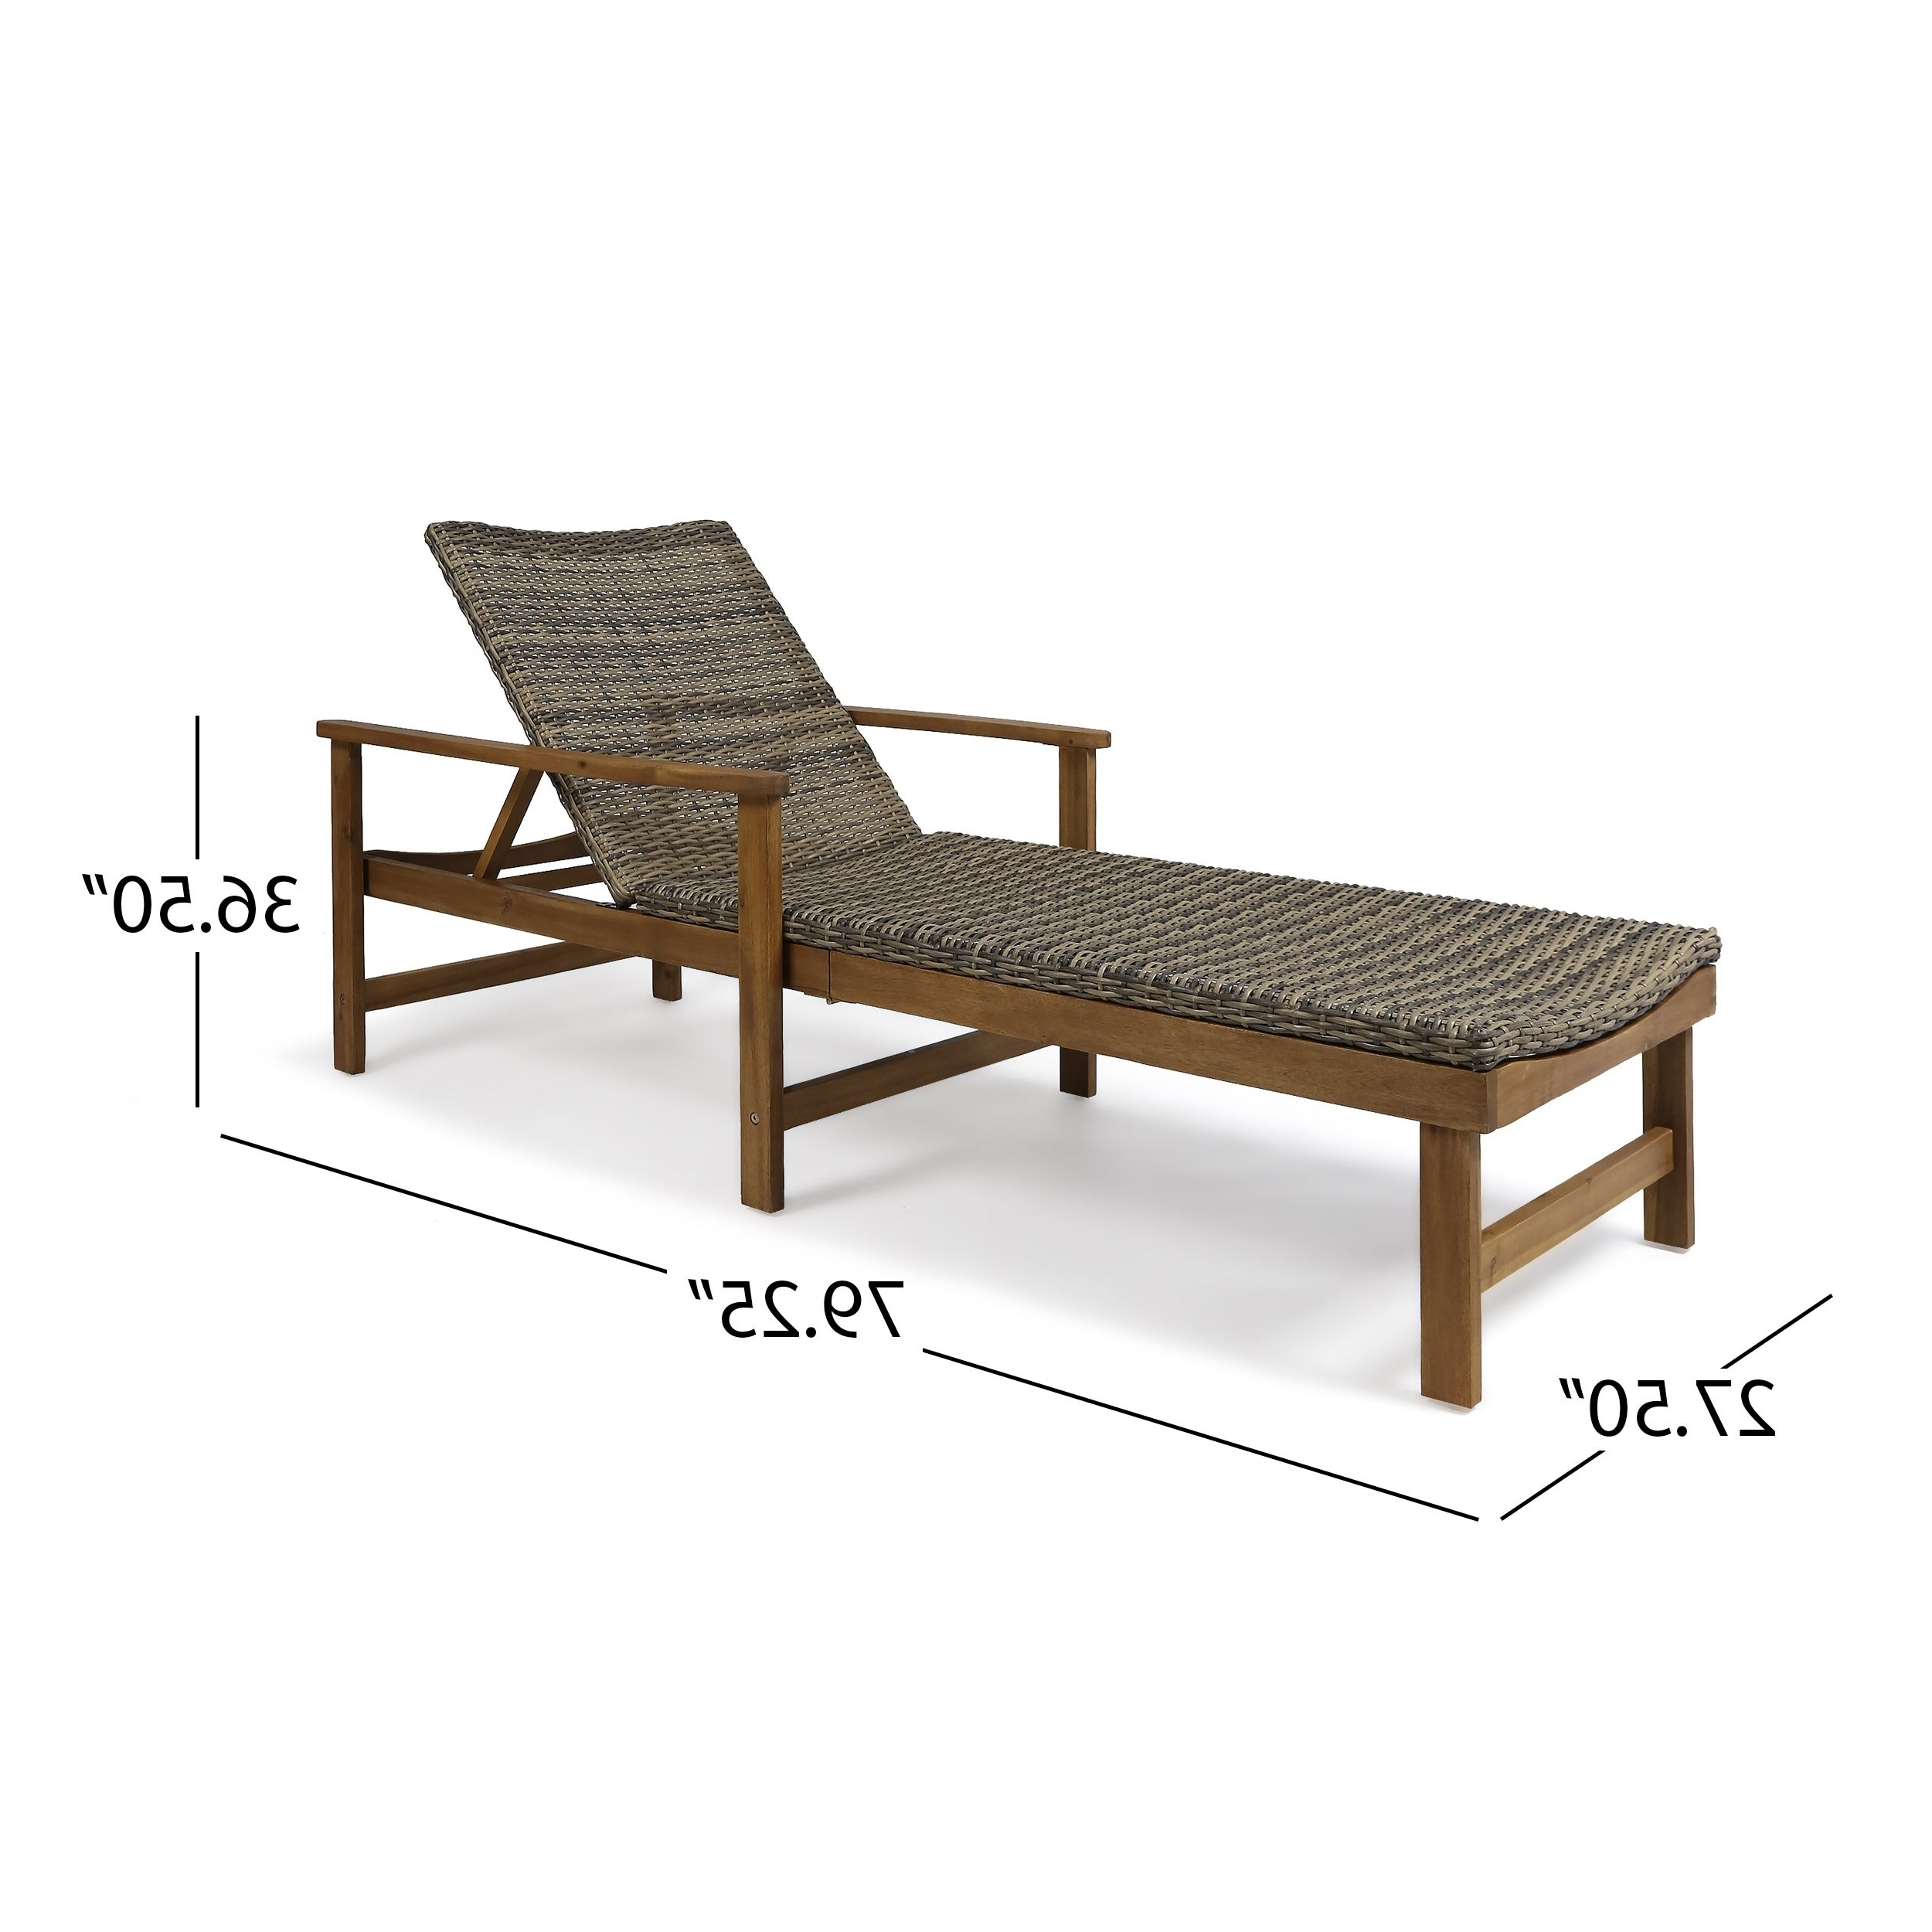 Famous Outdoor Rustic Acacia Wood Chaise Lounges With Wicker Seat For Details About Hampton Outdoor Rustic Acacia Wood Chaise Lounge With Wicker (View 2 of 25)